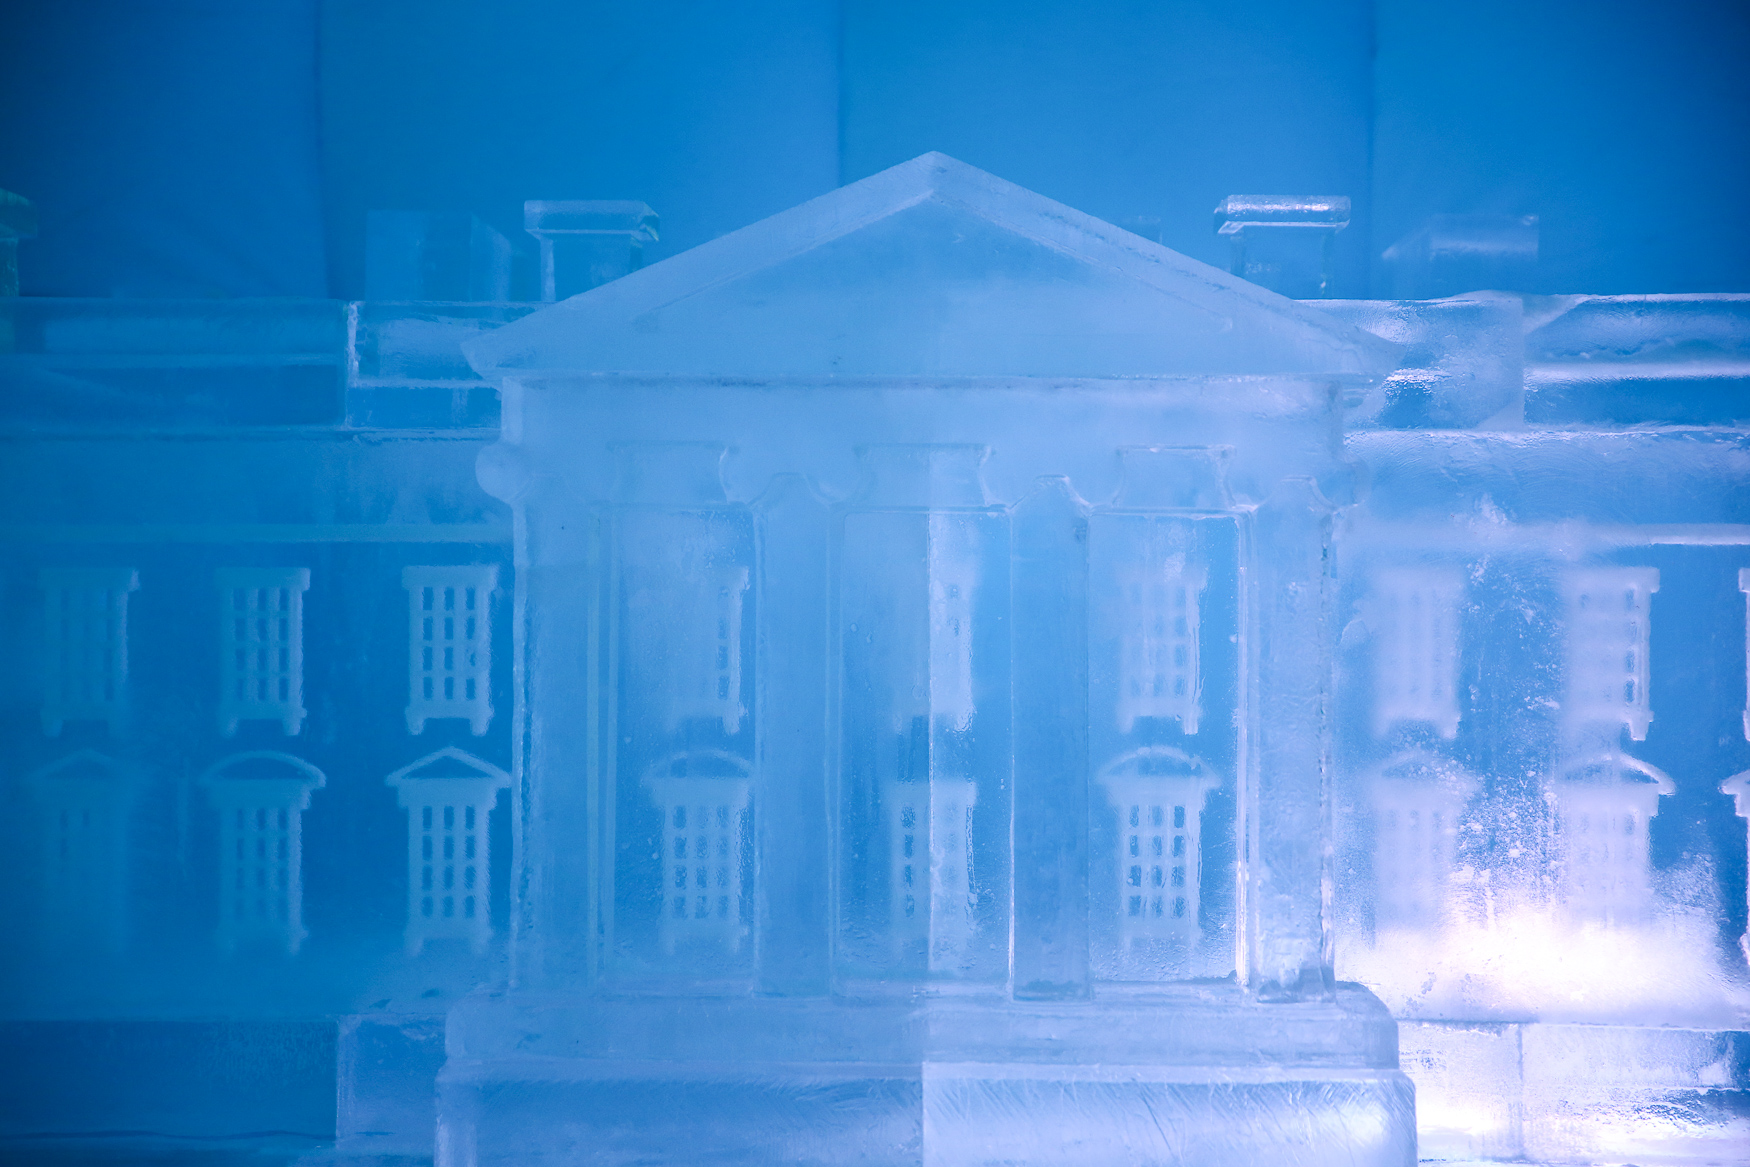 This weekend, you can head over to CityCenterDC to catch some of the monuments in ice form. The sculptures were carved out of 50,000 pounds of ice and reach up to 12 feet tall. The tent that holds the monumental ice sculptures will be open from 10:00 am - 2:00 pm and 4:00 pm - 9:00 pm until Sunday. (Amanda Andrade-Rhoades/DC Refined)